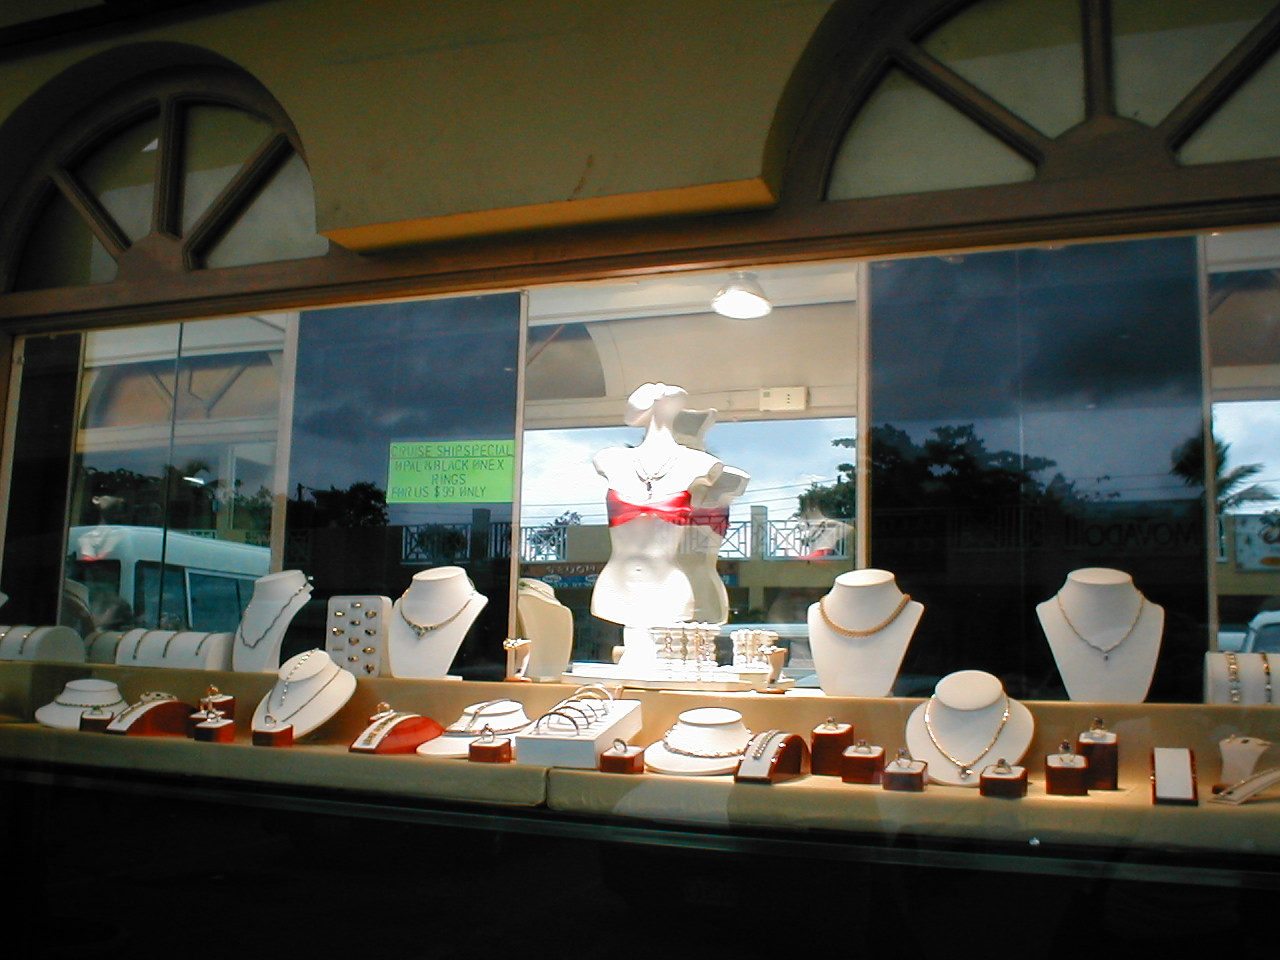 Various jewels such as necklaces, bracelets and rings displayed in a jewelry store window seen in Ocho Rios.